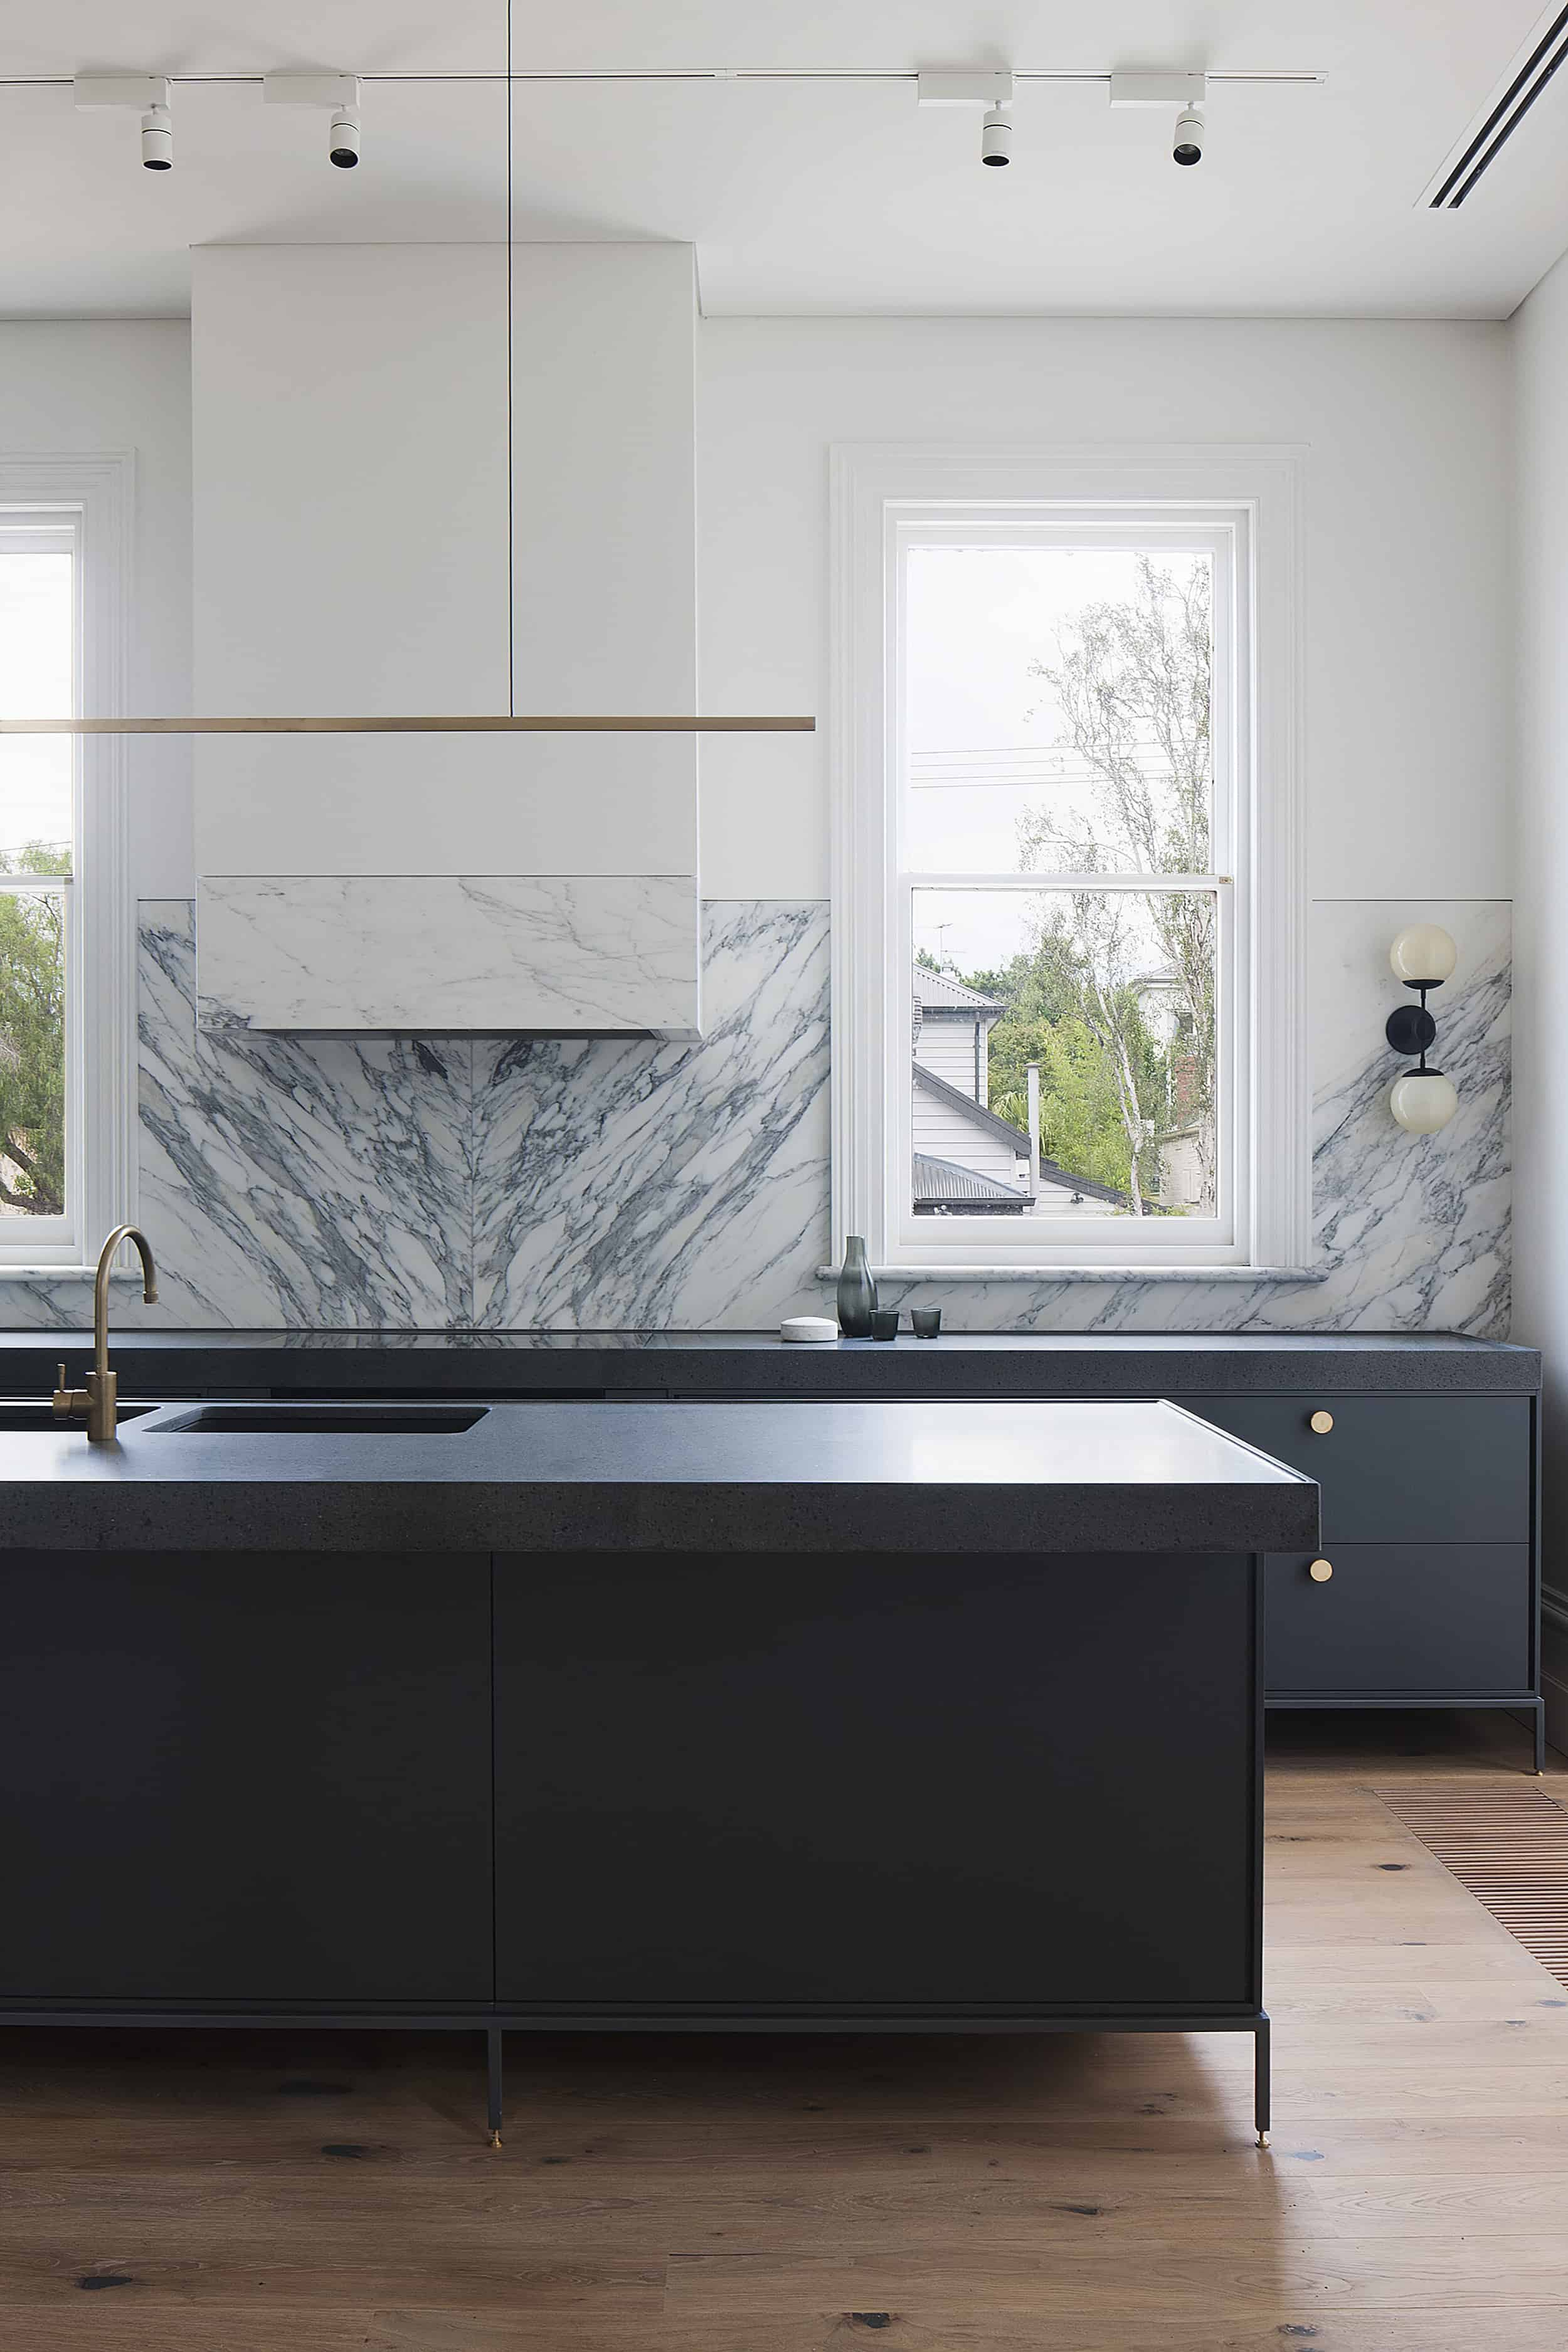 marble backsplash modern kitchen track lighting